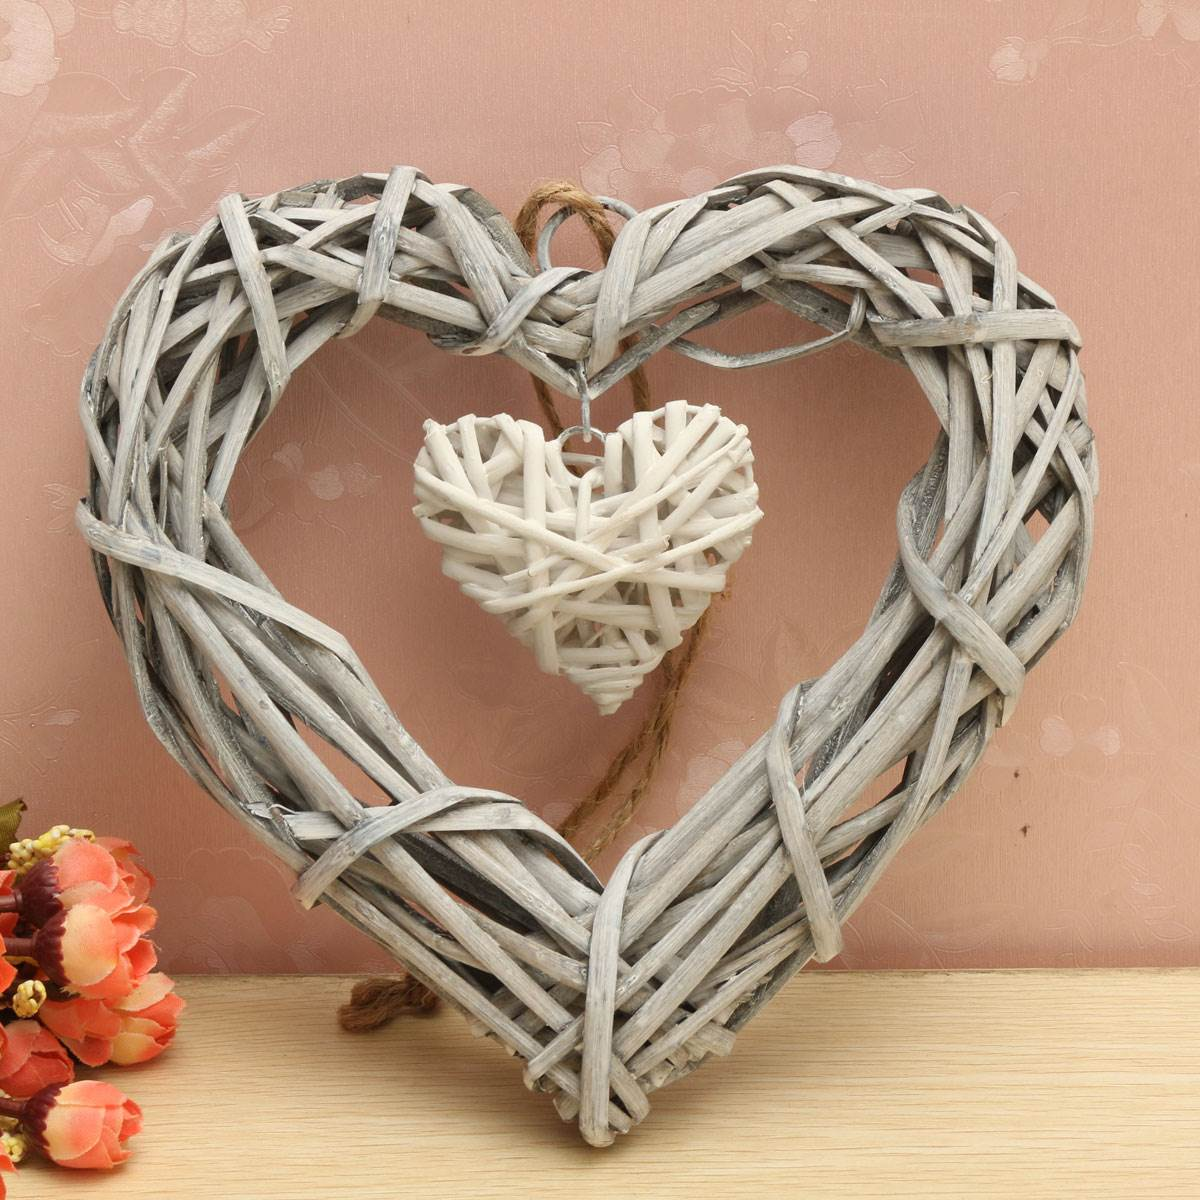 Wicker hanging heart in grey white wreath color rattan for Objet deco shabby